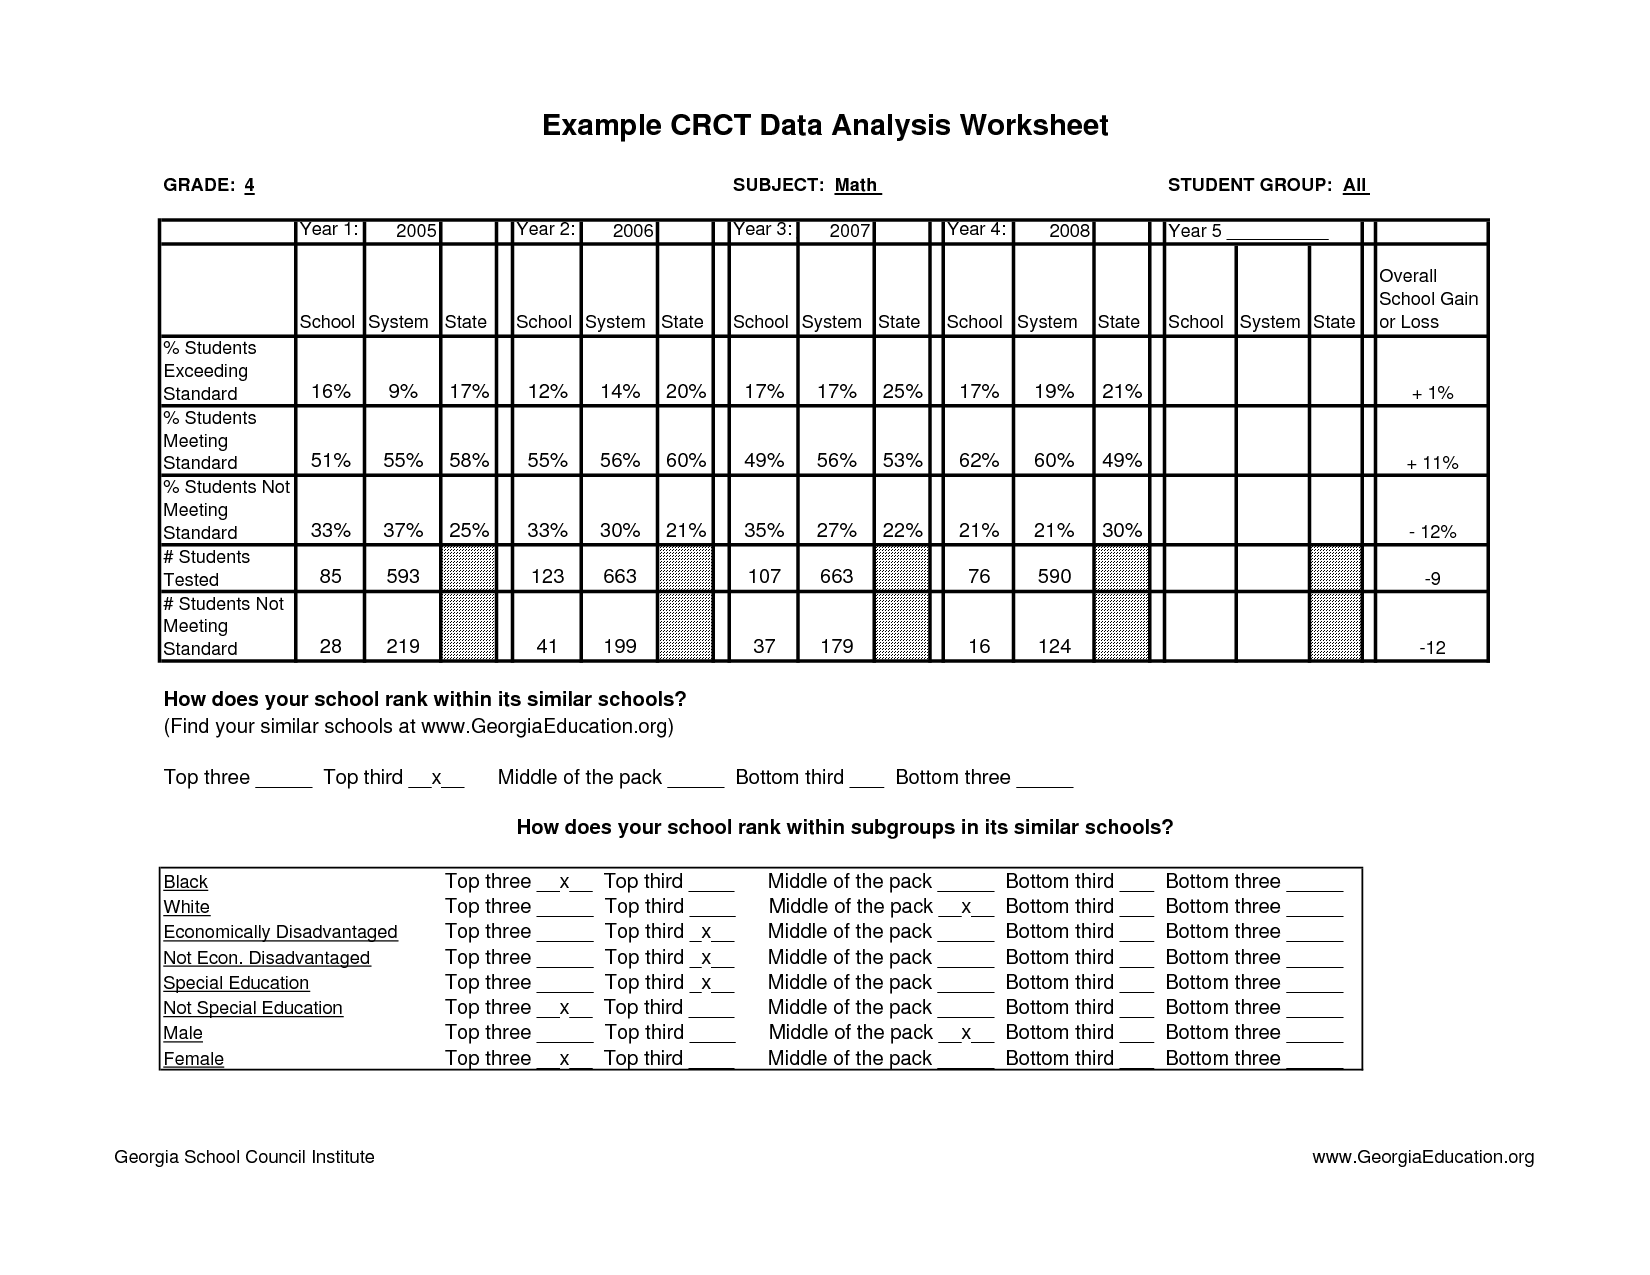 Worksheets Analyzing Data Worksheet data analysis worksheets mode and range example crct worksheet 7 worksheets